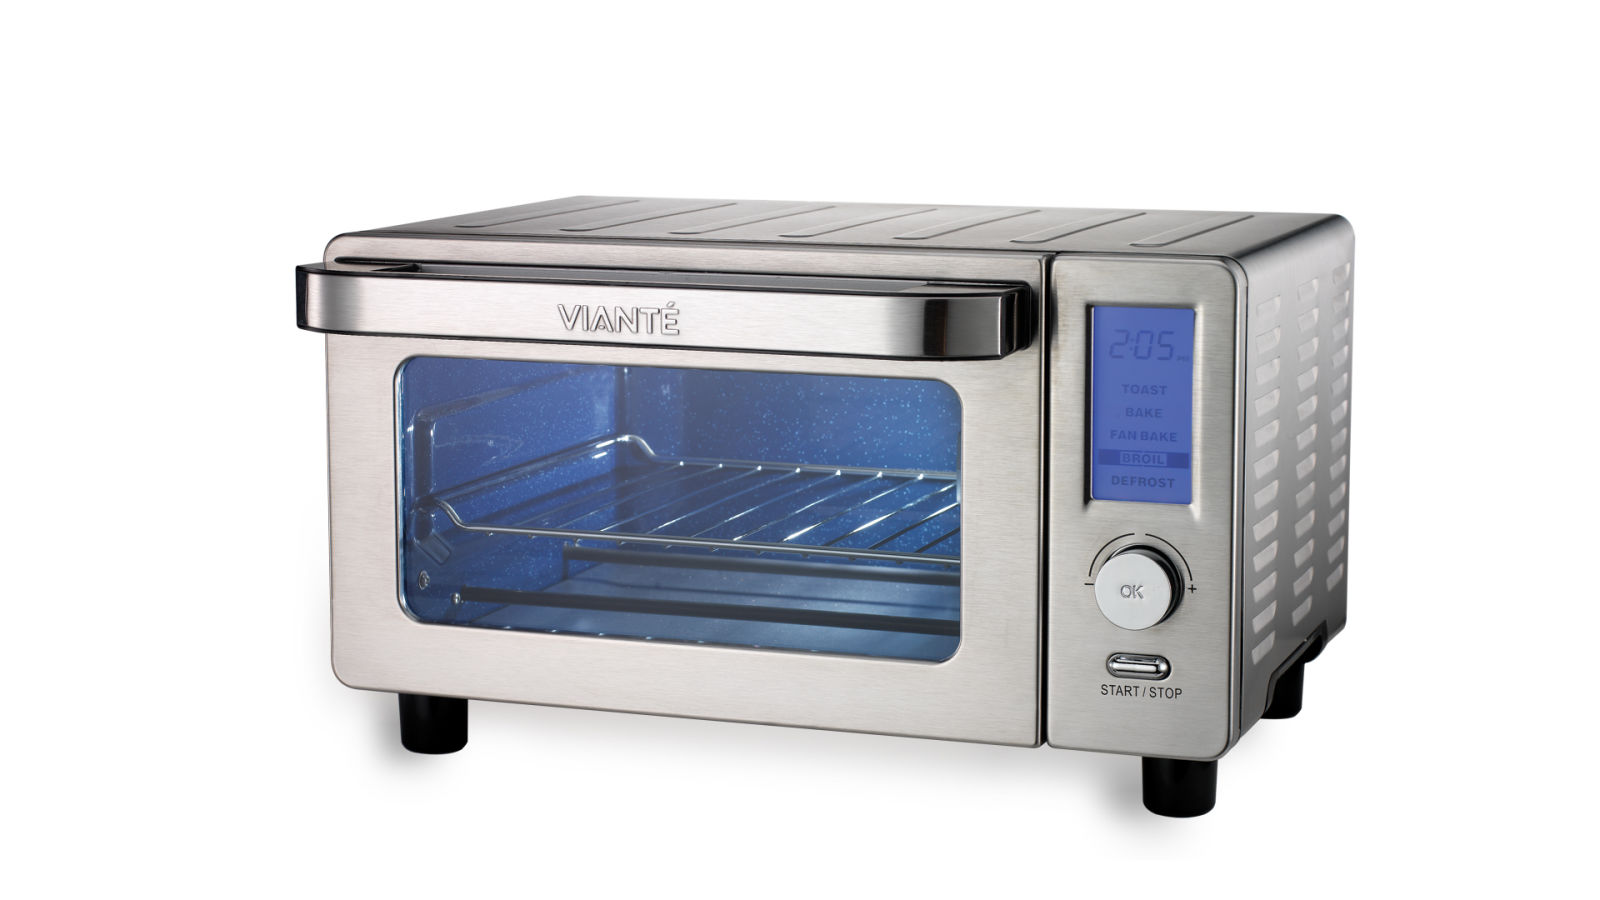 Professional Countertop Convection Oven Reviews : Viante True Blue Convection Toaster Oven CUC-04E Review